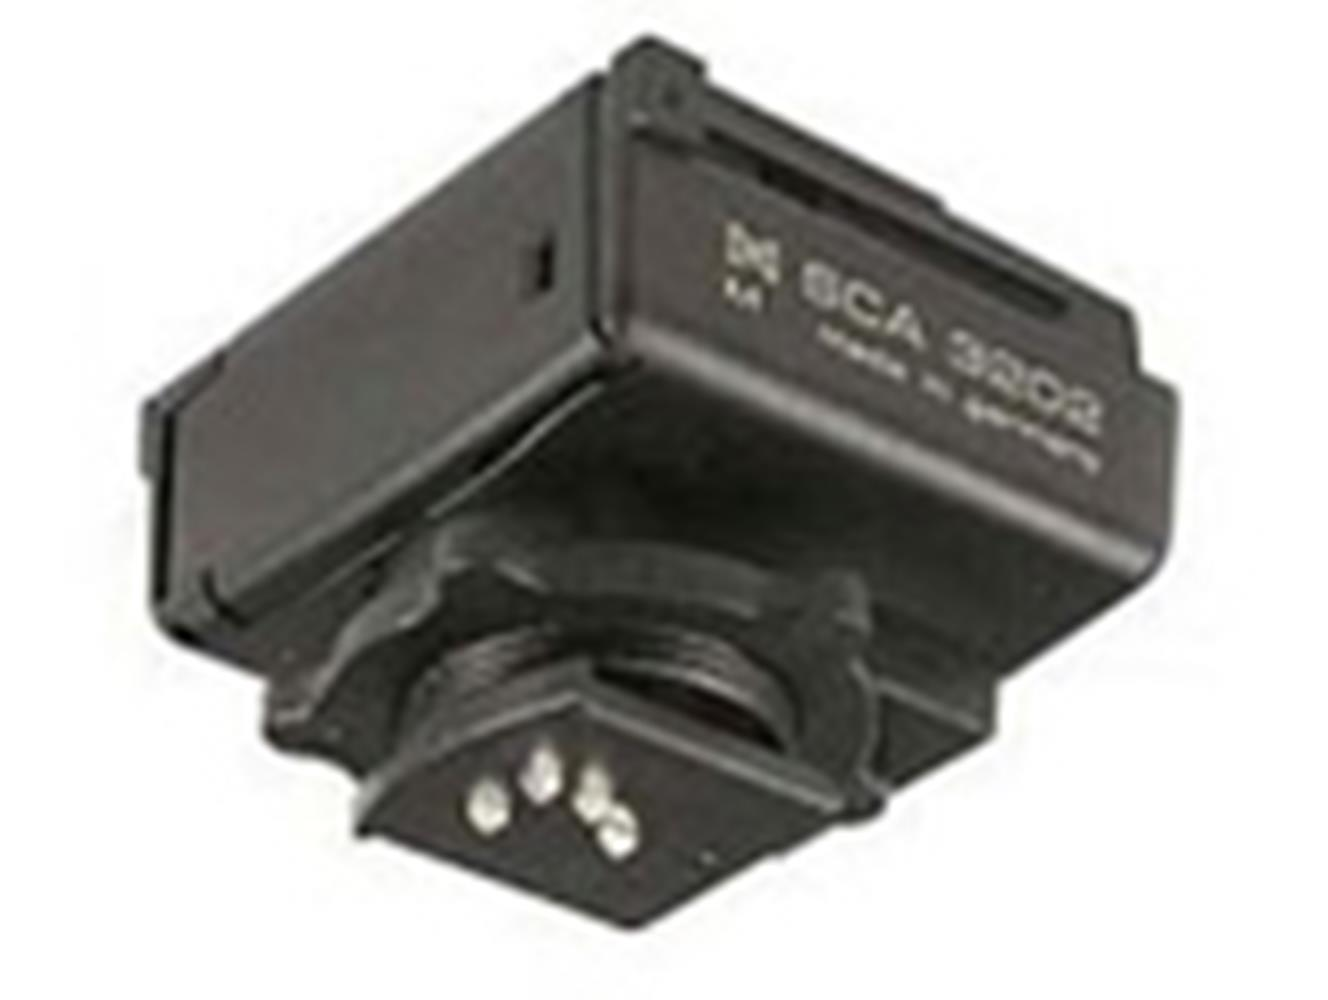 METZ SCA3202 FLASH ADAPTER FOR E10